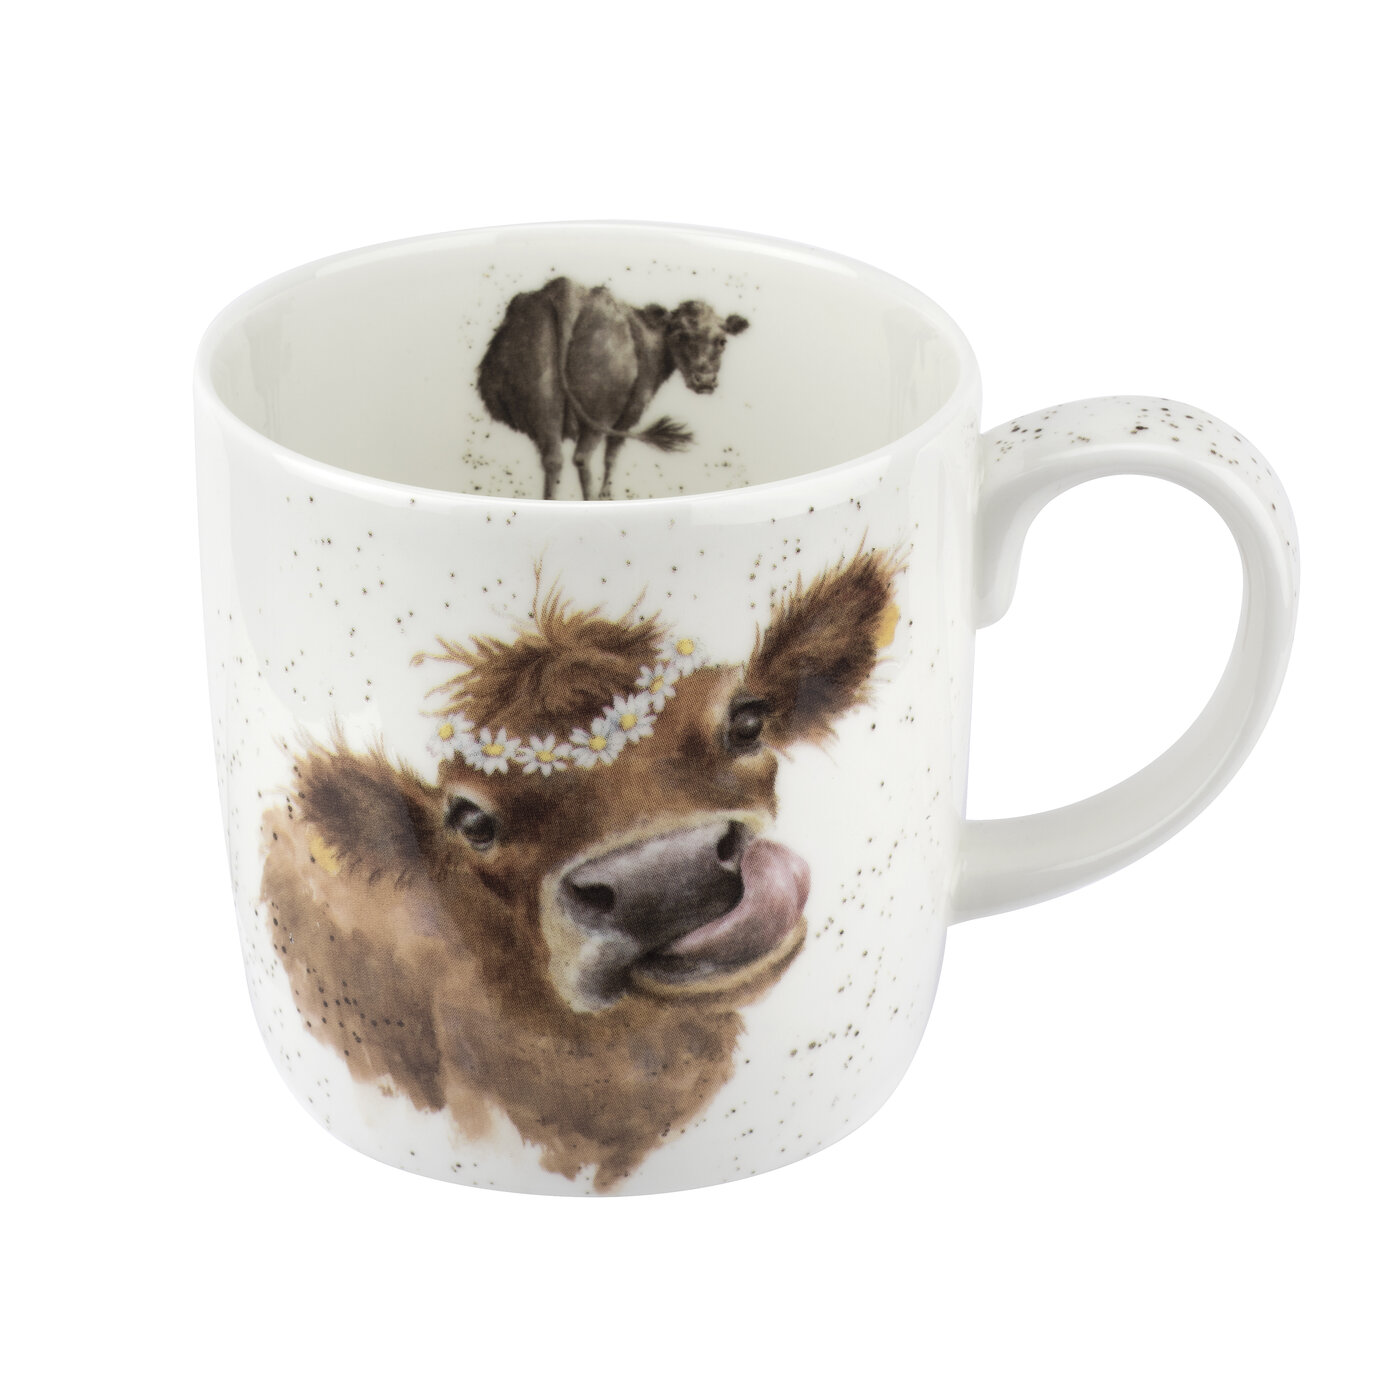 Royal Worcester Wrendale Designs Mug 14 Ounce Mooo (Cow) image number 0